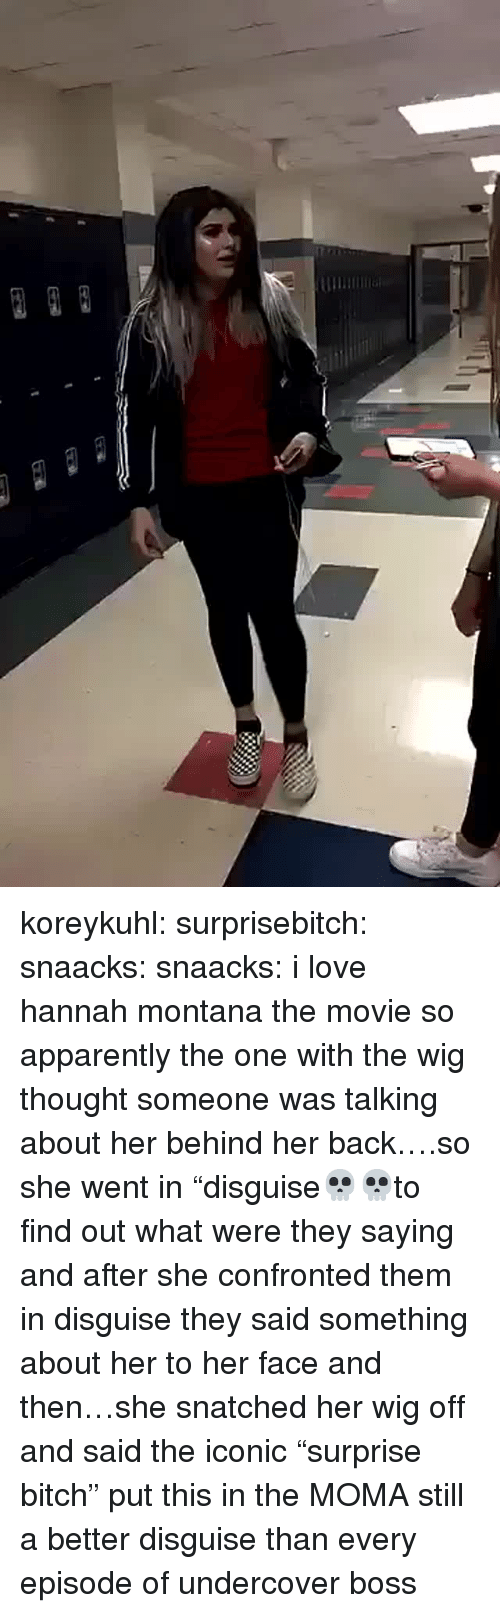 """Apparently, Bitch, and Love: koreykuhl: surprisebitch:  snaacks:  snaacks:  i love hannah montana the movie  so apparently the one with the wig thought someone was talking about her behind her back….so she went in """"disguise💀💀to find out what were they saying and after she confronted them in disguise they said something about her to her face and then…she snatched her wig off and said the iconic """"surprise bitch""""  put this in the MOMA  still a better disguise than every episode of undercover boss"""